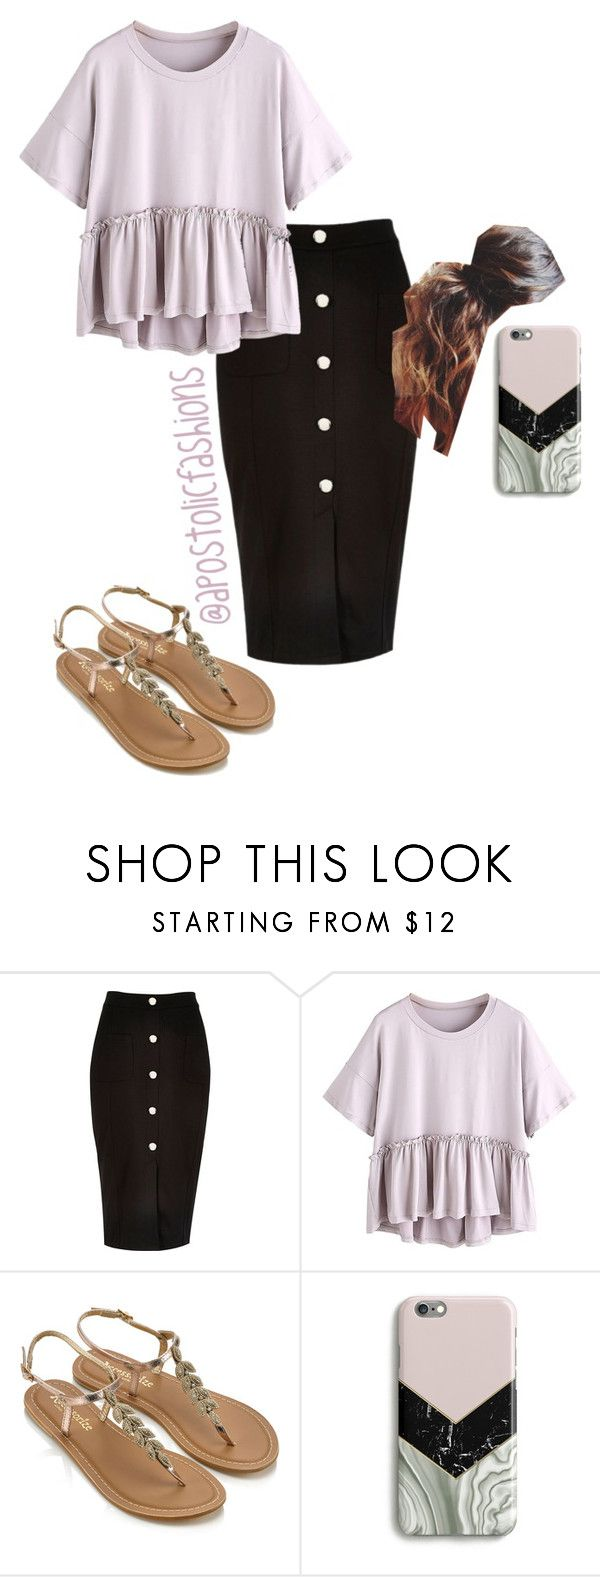 """""""Apostolic Fashions #1759"""" by apostolicfashions ❤ liked on Polyvore featuring River Island, Accessorize and Harper & Blake"""